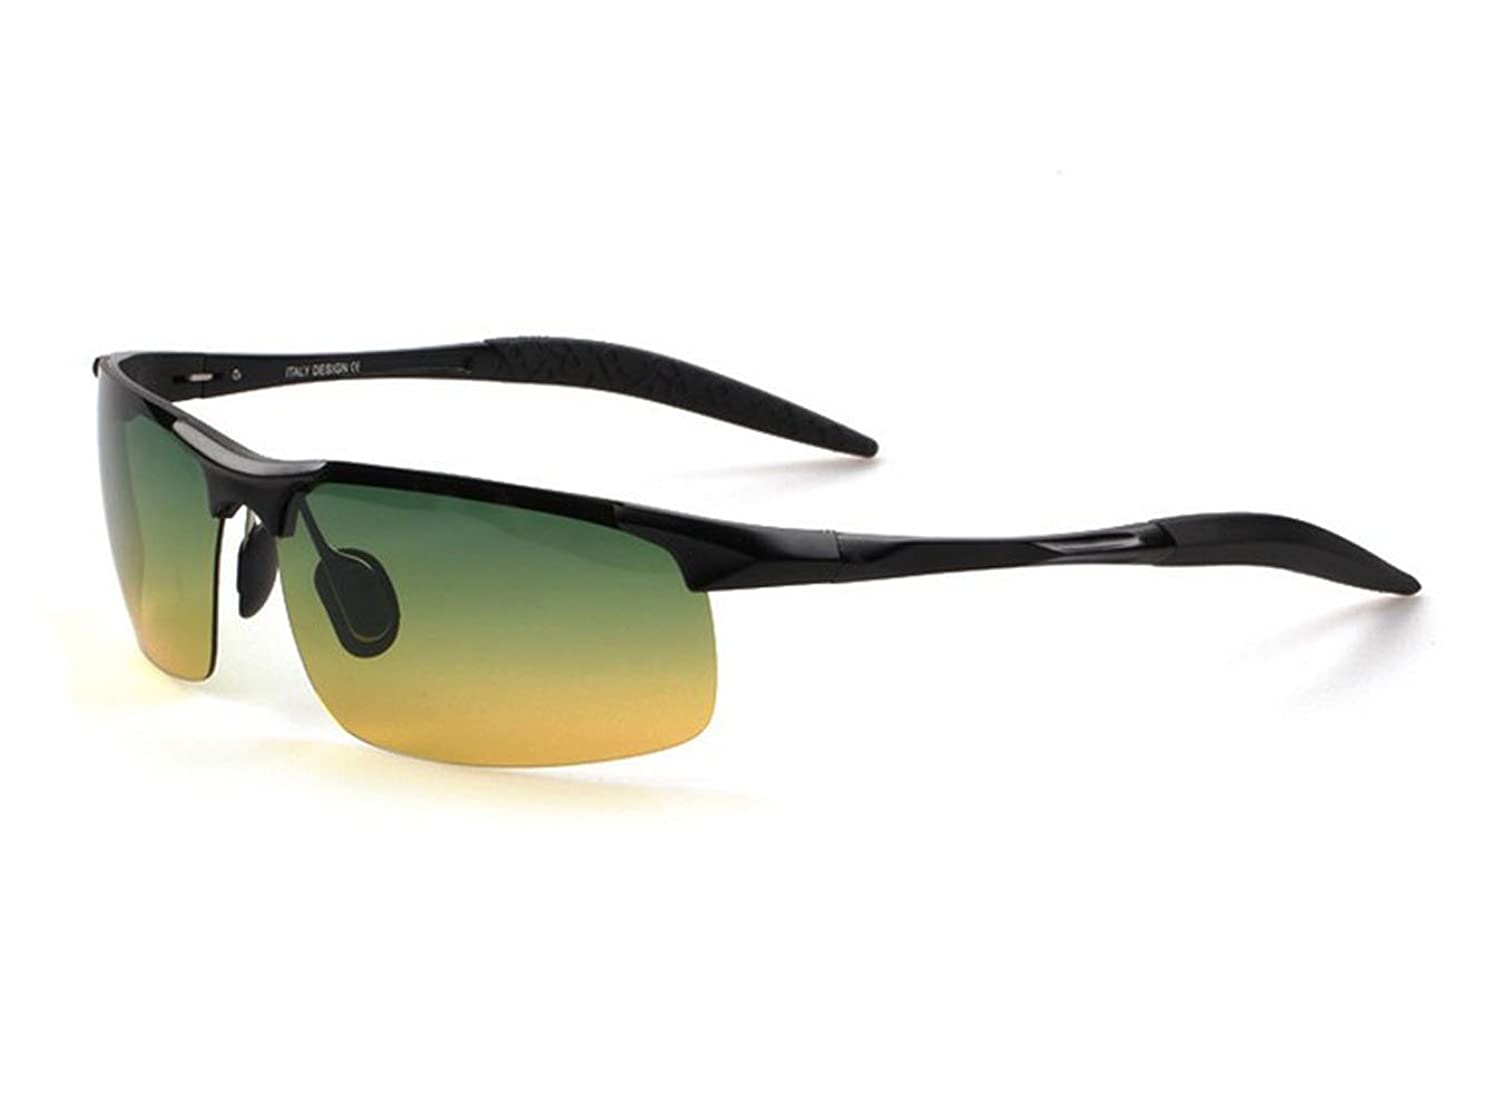 TELAM Telam Polarized Sunglasses Day and Night, Night Vision Glasses